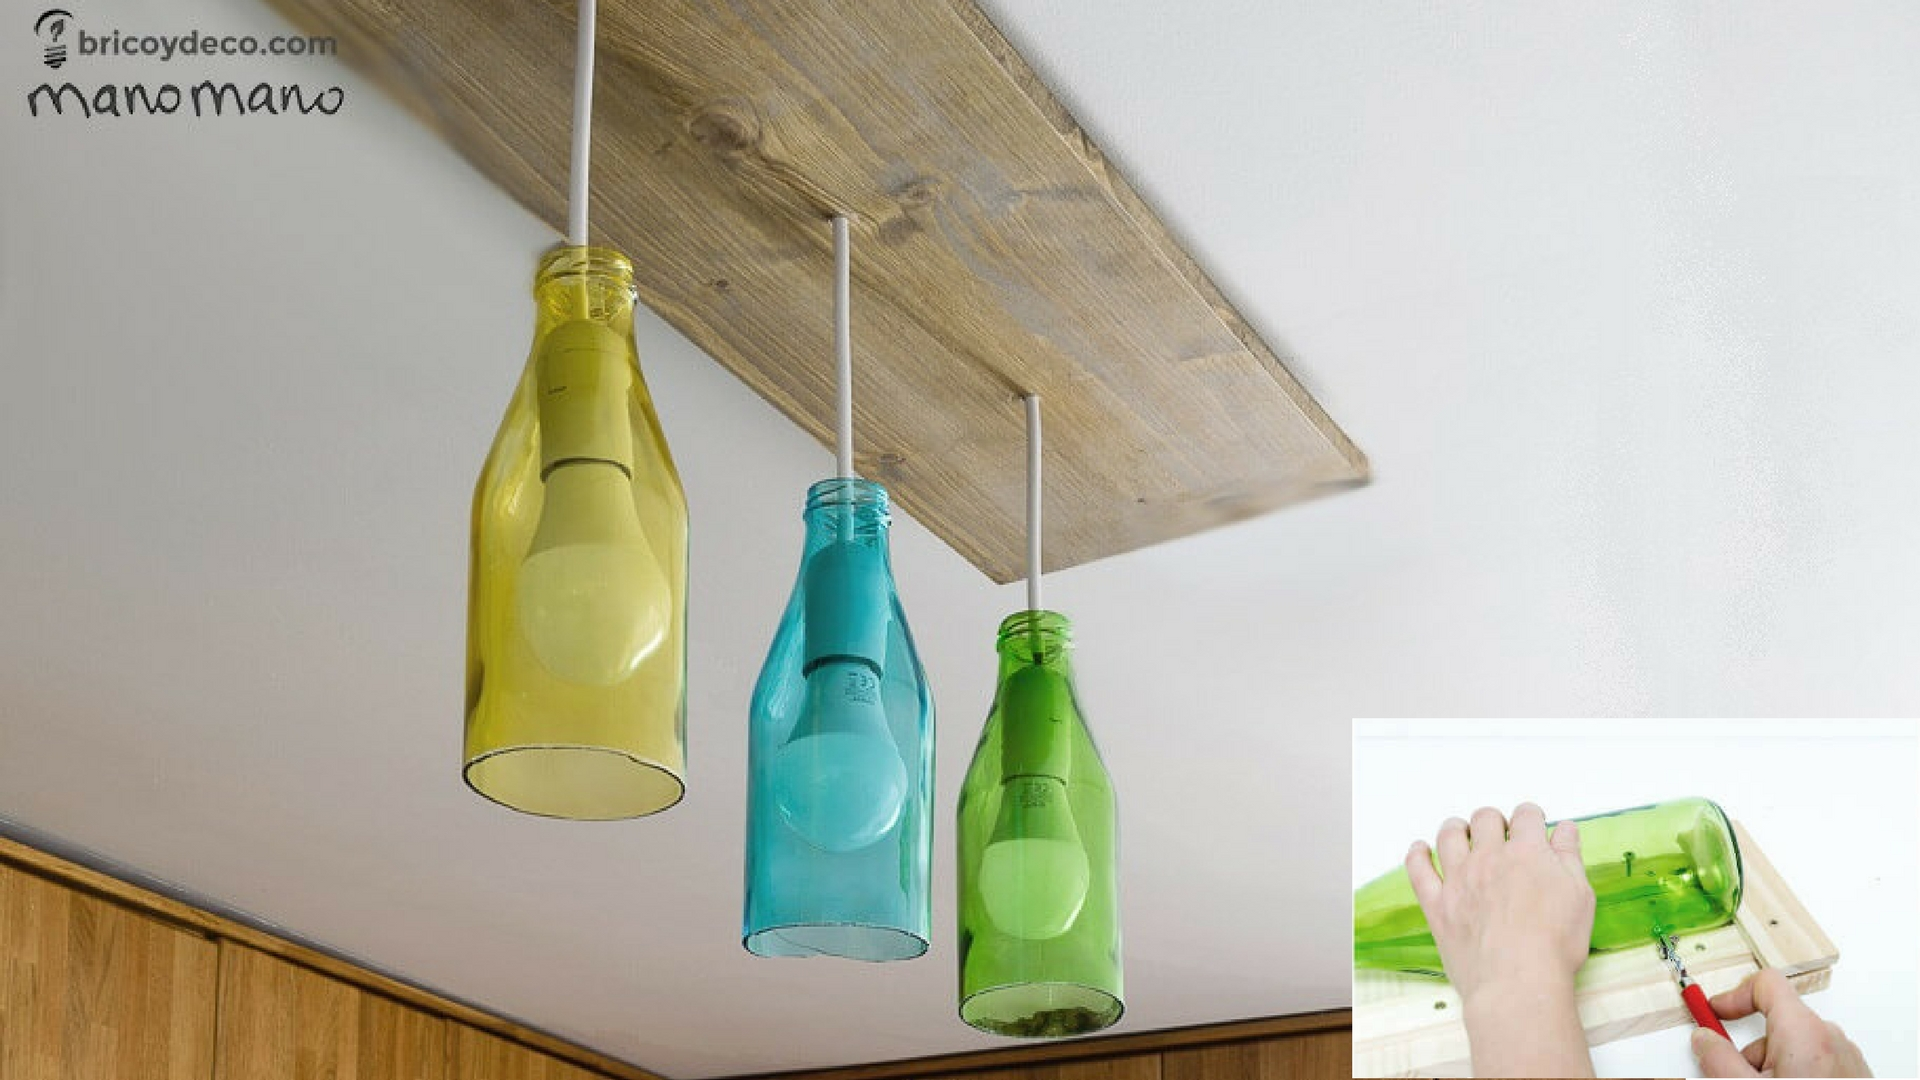 Recycled Plastic Bottle Lamp Glass Bottle Diy Bottle Cutter And Ceiling Light The Handy Mano